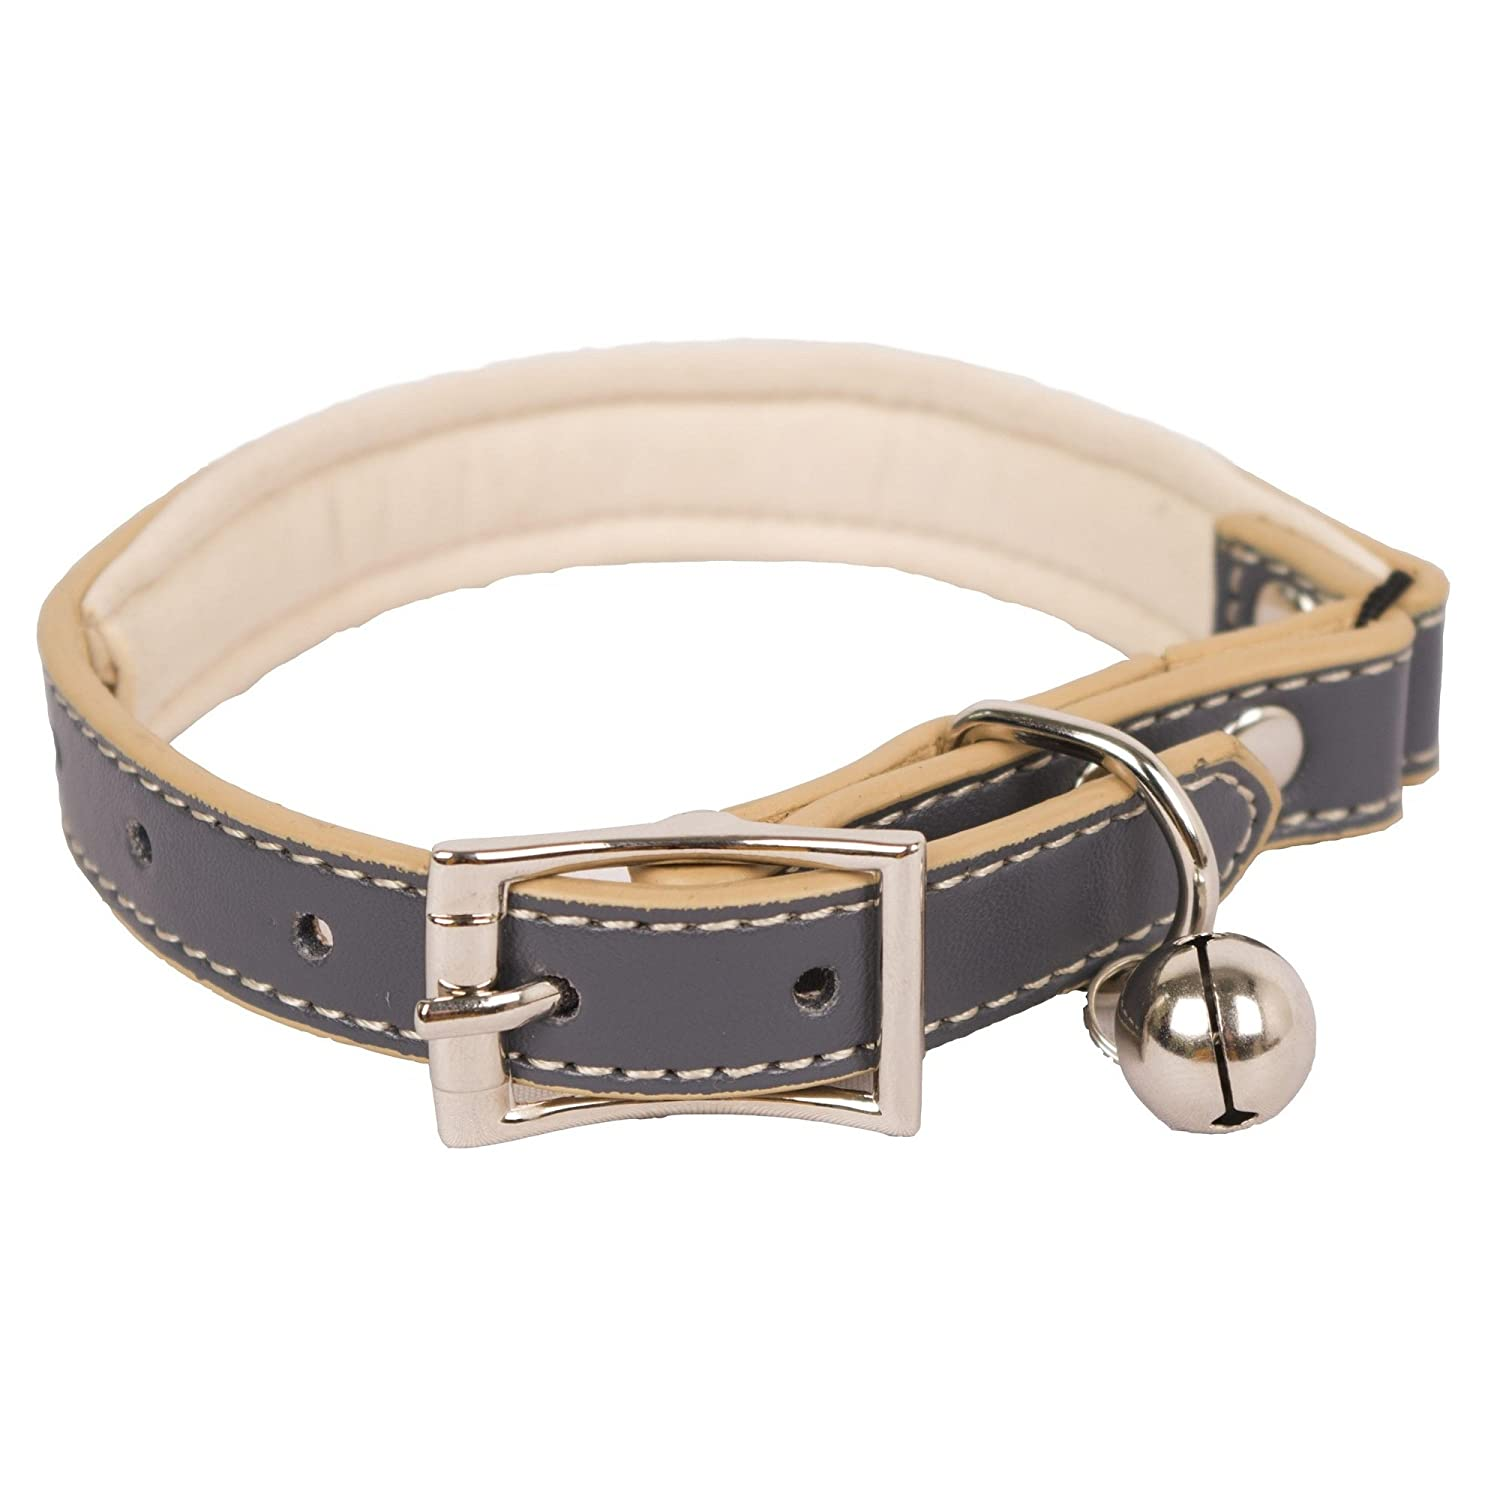 Banbury & Co Luxury Cat Collar UTVP2561_1